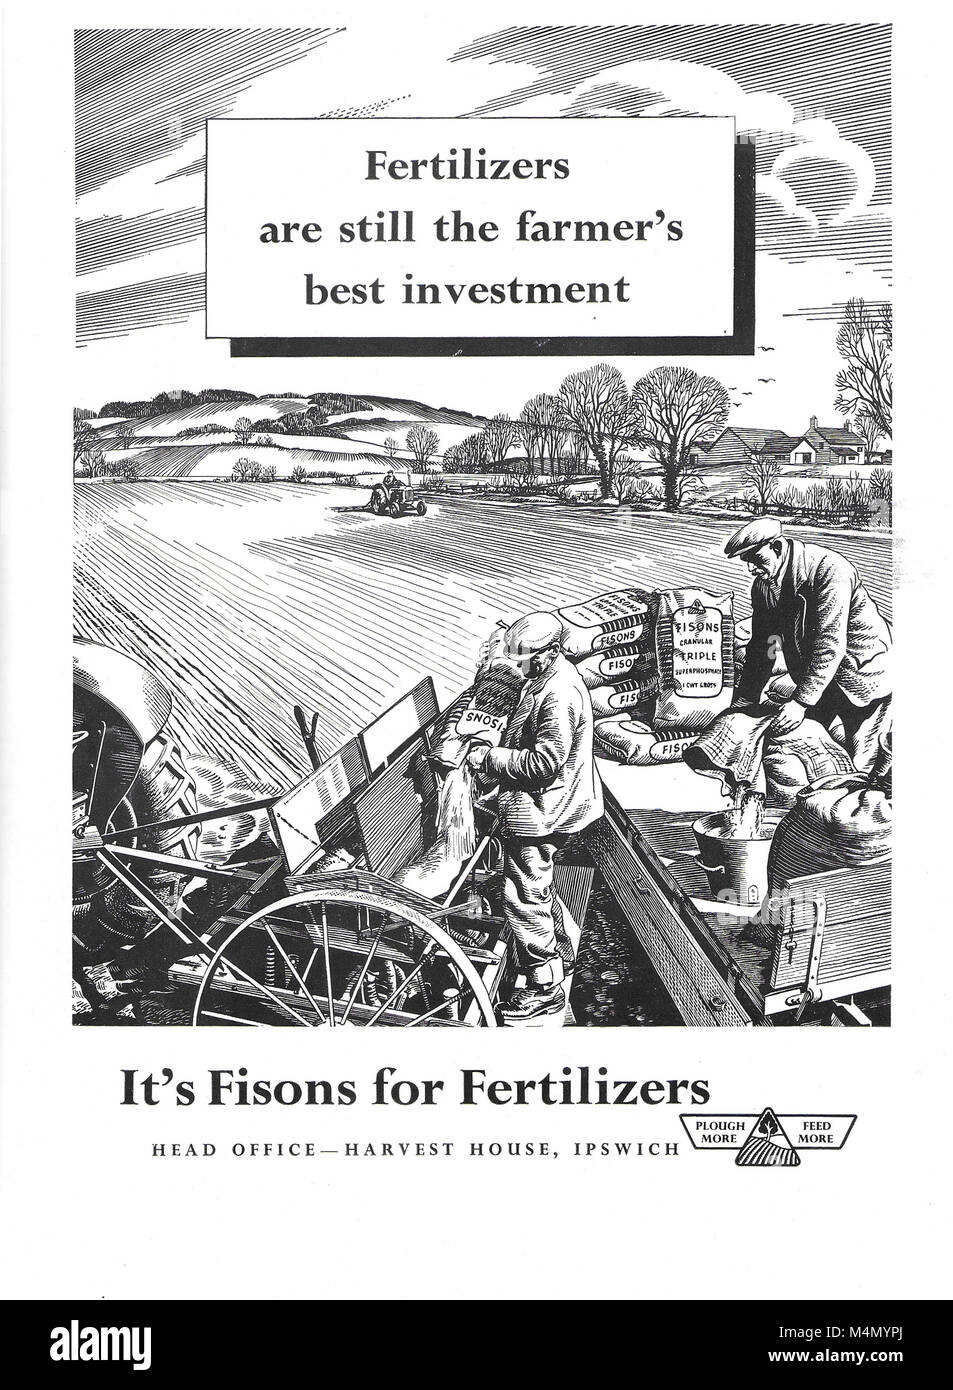 Fisons fertiliser advert, advertising in Country Life magazine UK 1951 - Stock Image